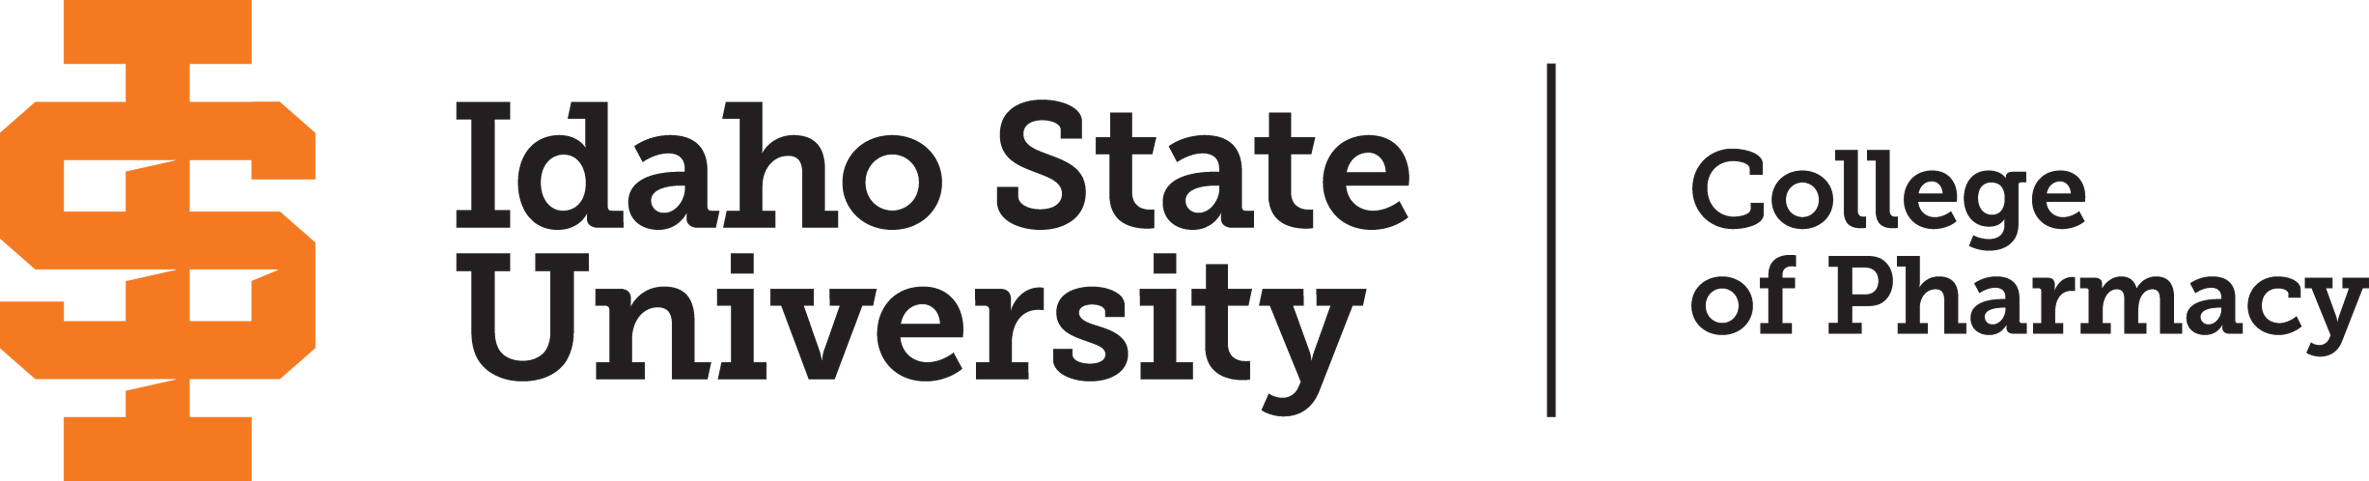 Idaho State University College of Pharmacy logo